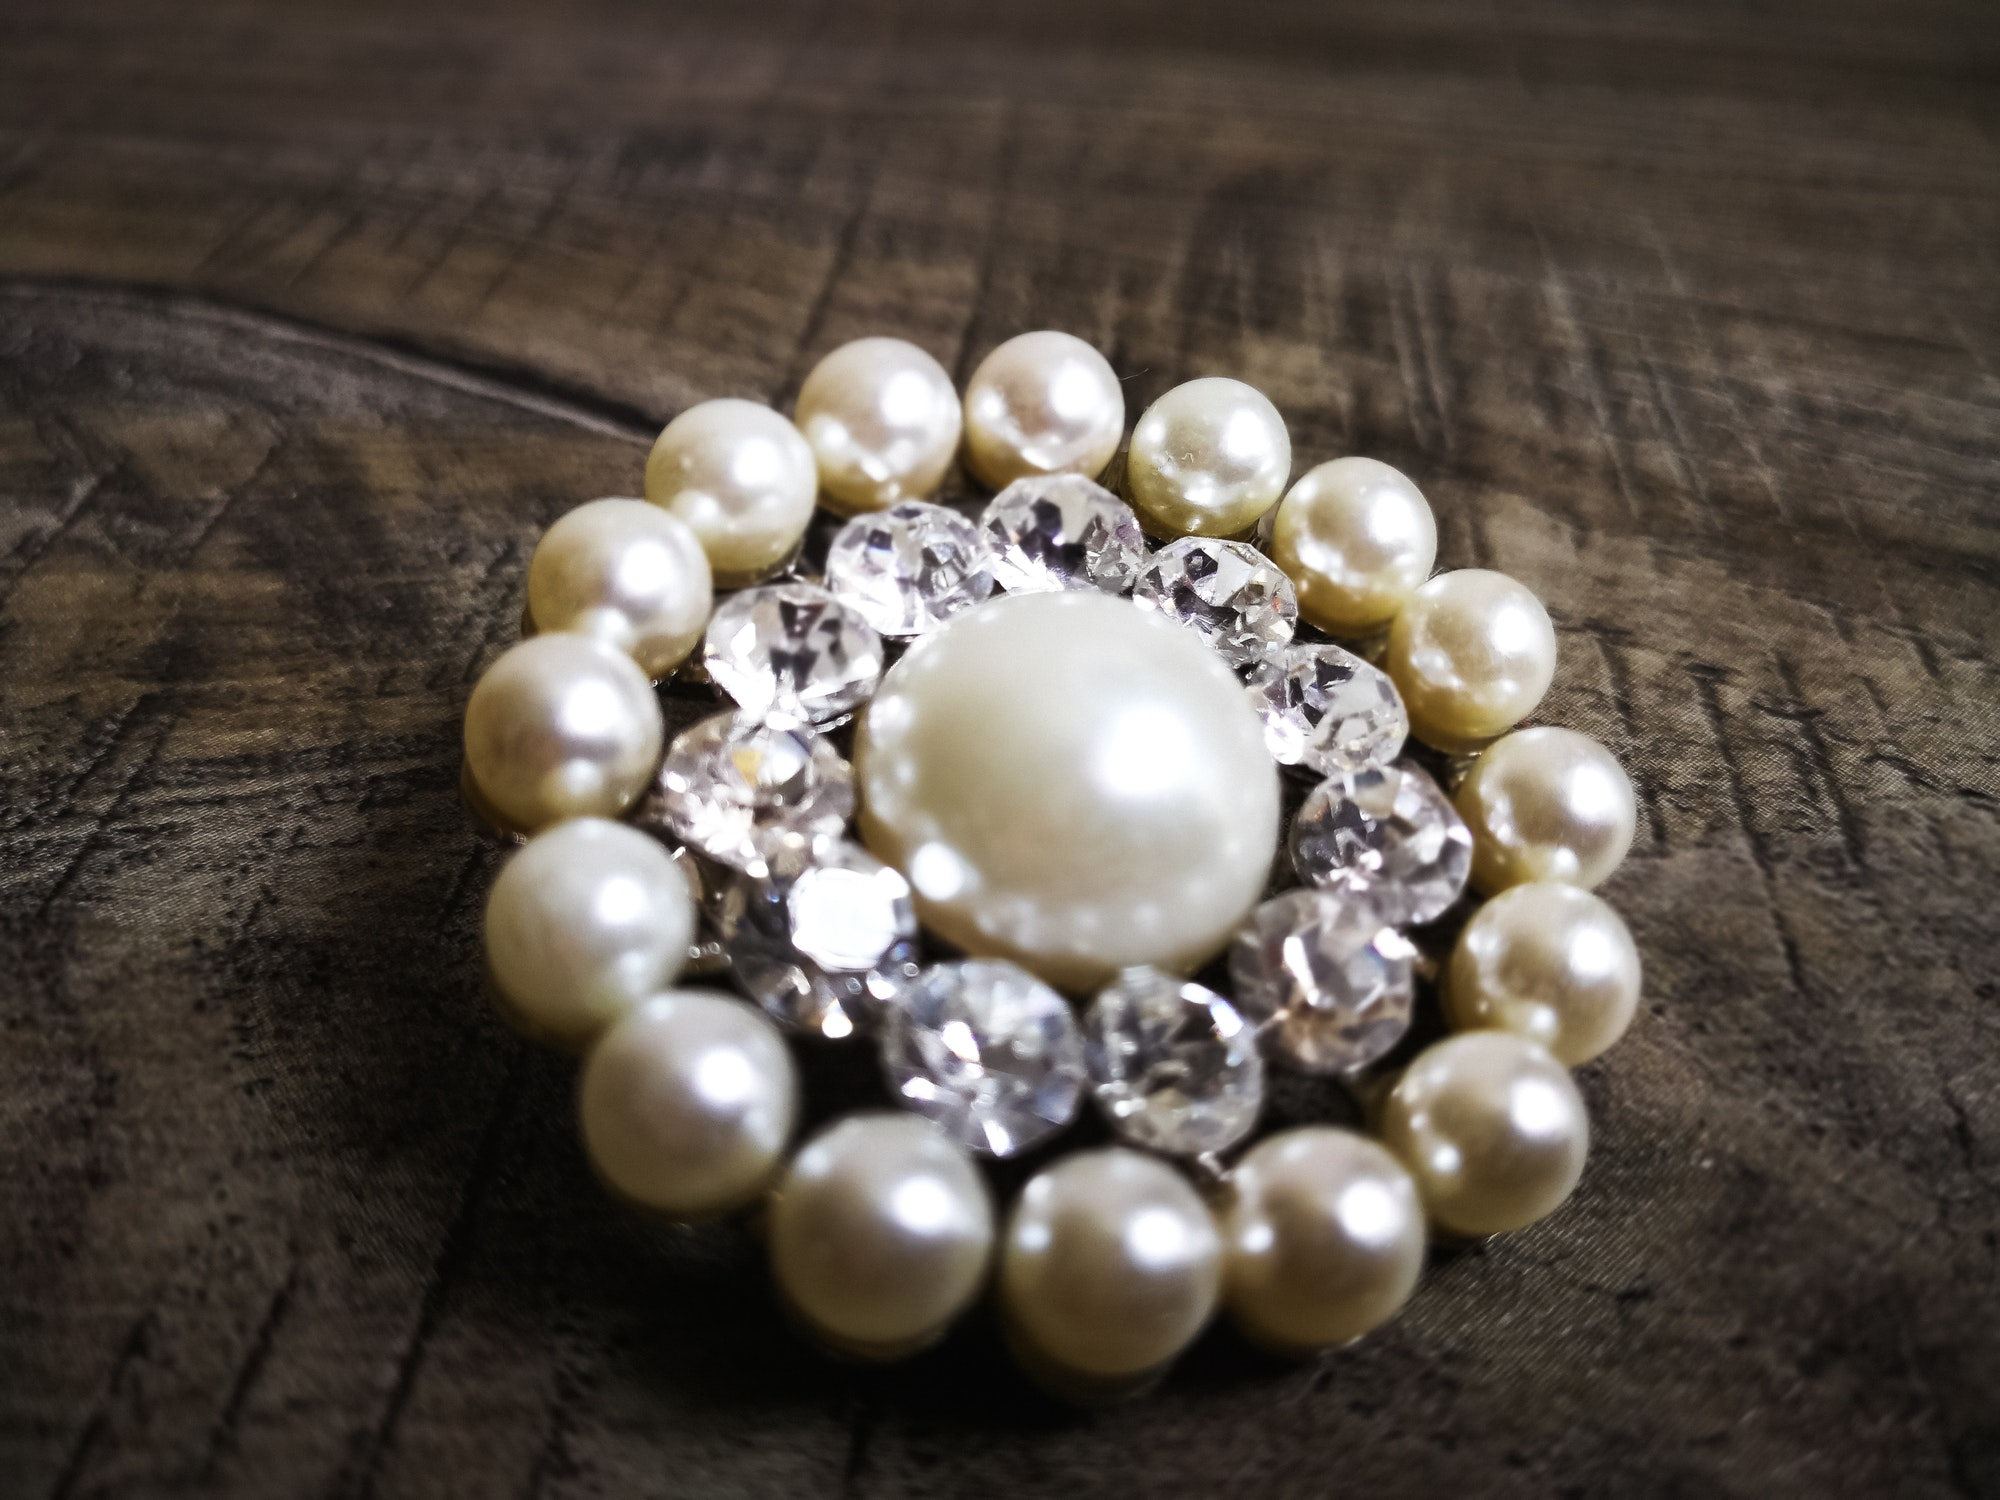 Brooch with white pearl for clothes isolated on wooden background. Brooch with diamond stone.